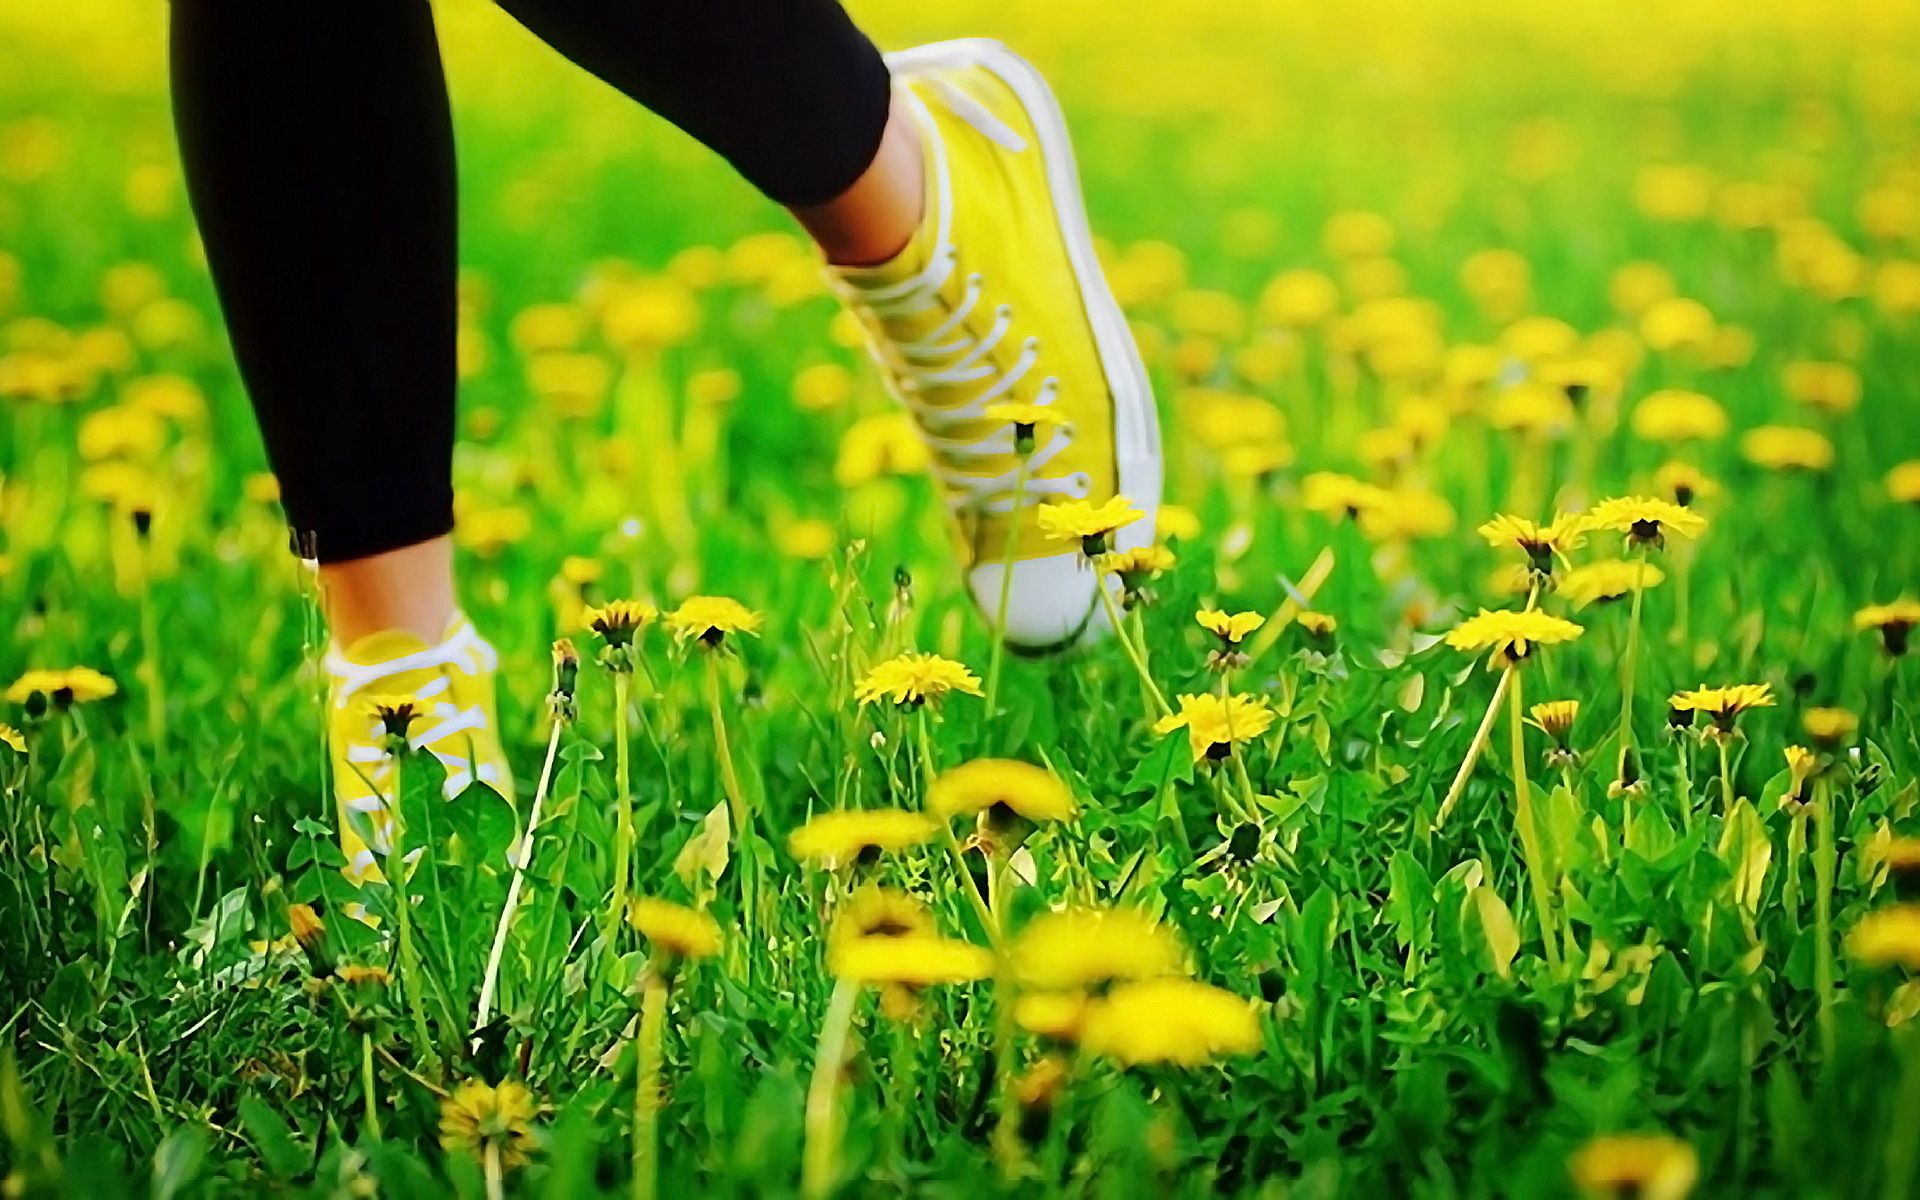 59071 download wallpaper Flowers, Grass, Dandelions, Miscellanea, Miscellaneous, Legs, Sneakers, Run Away, Run, Shoes screensavers and pictures for free